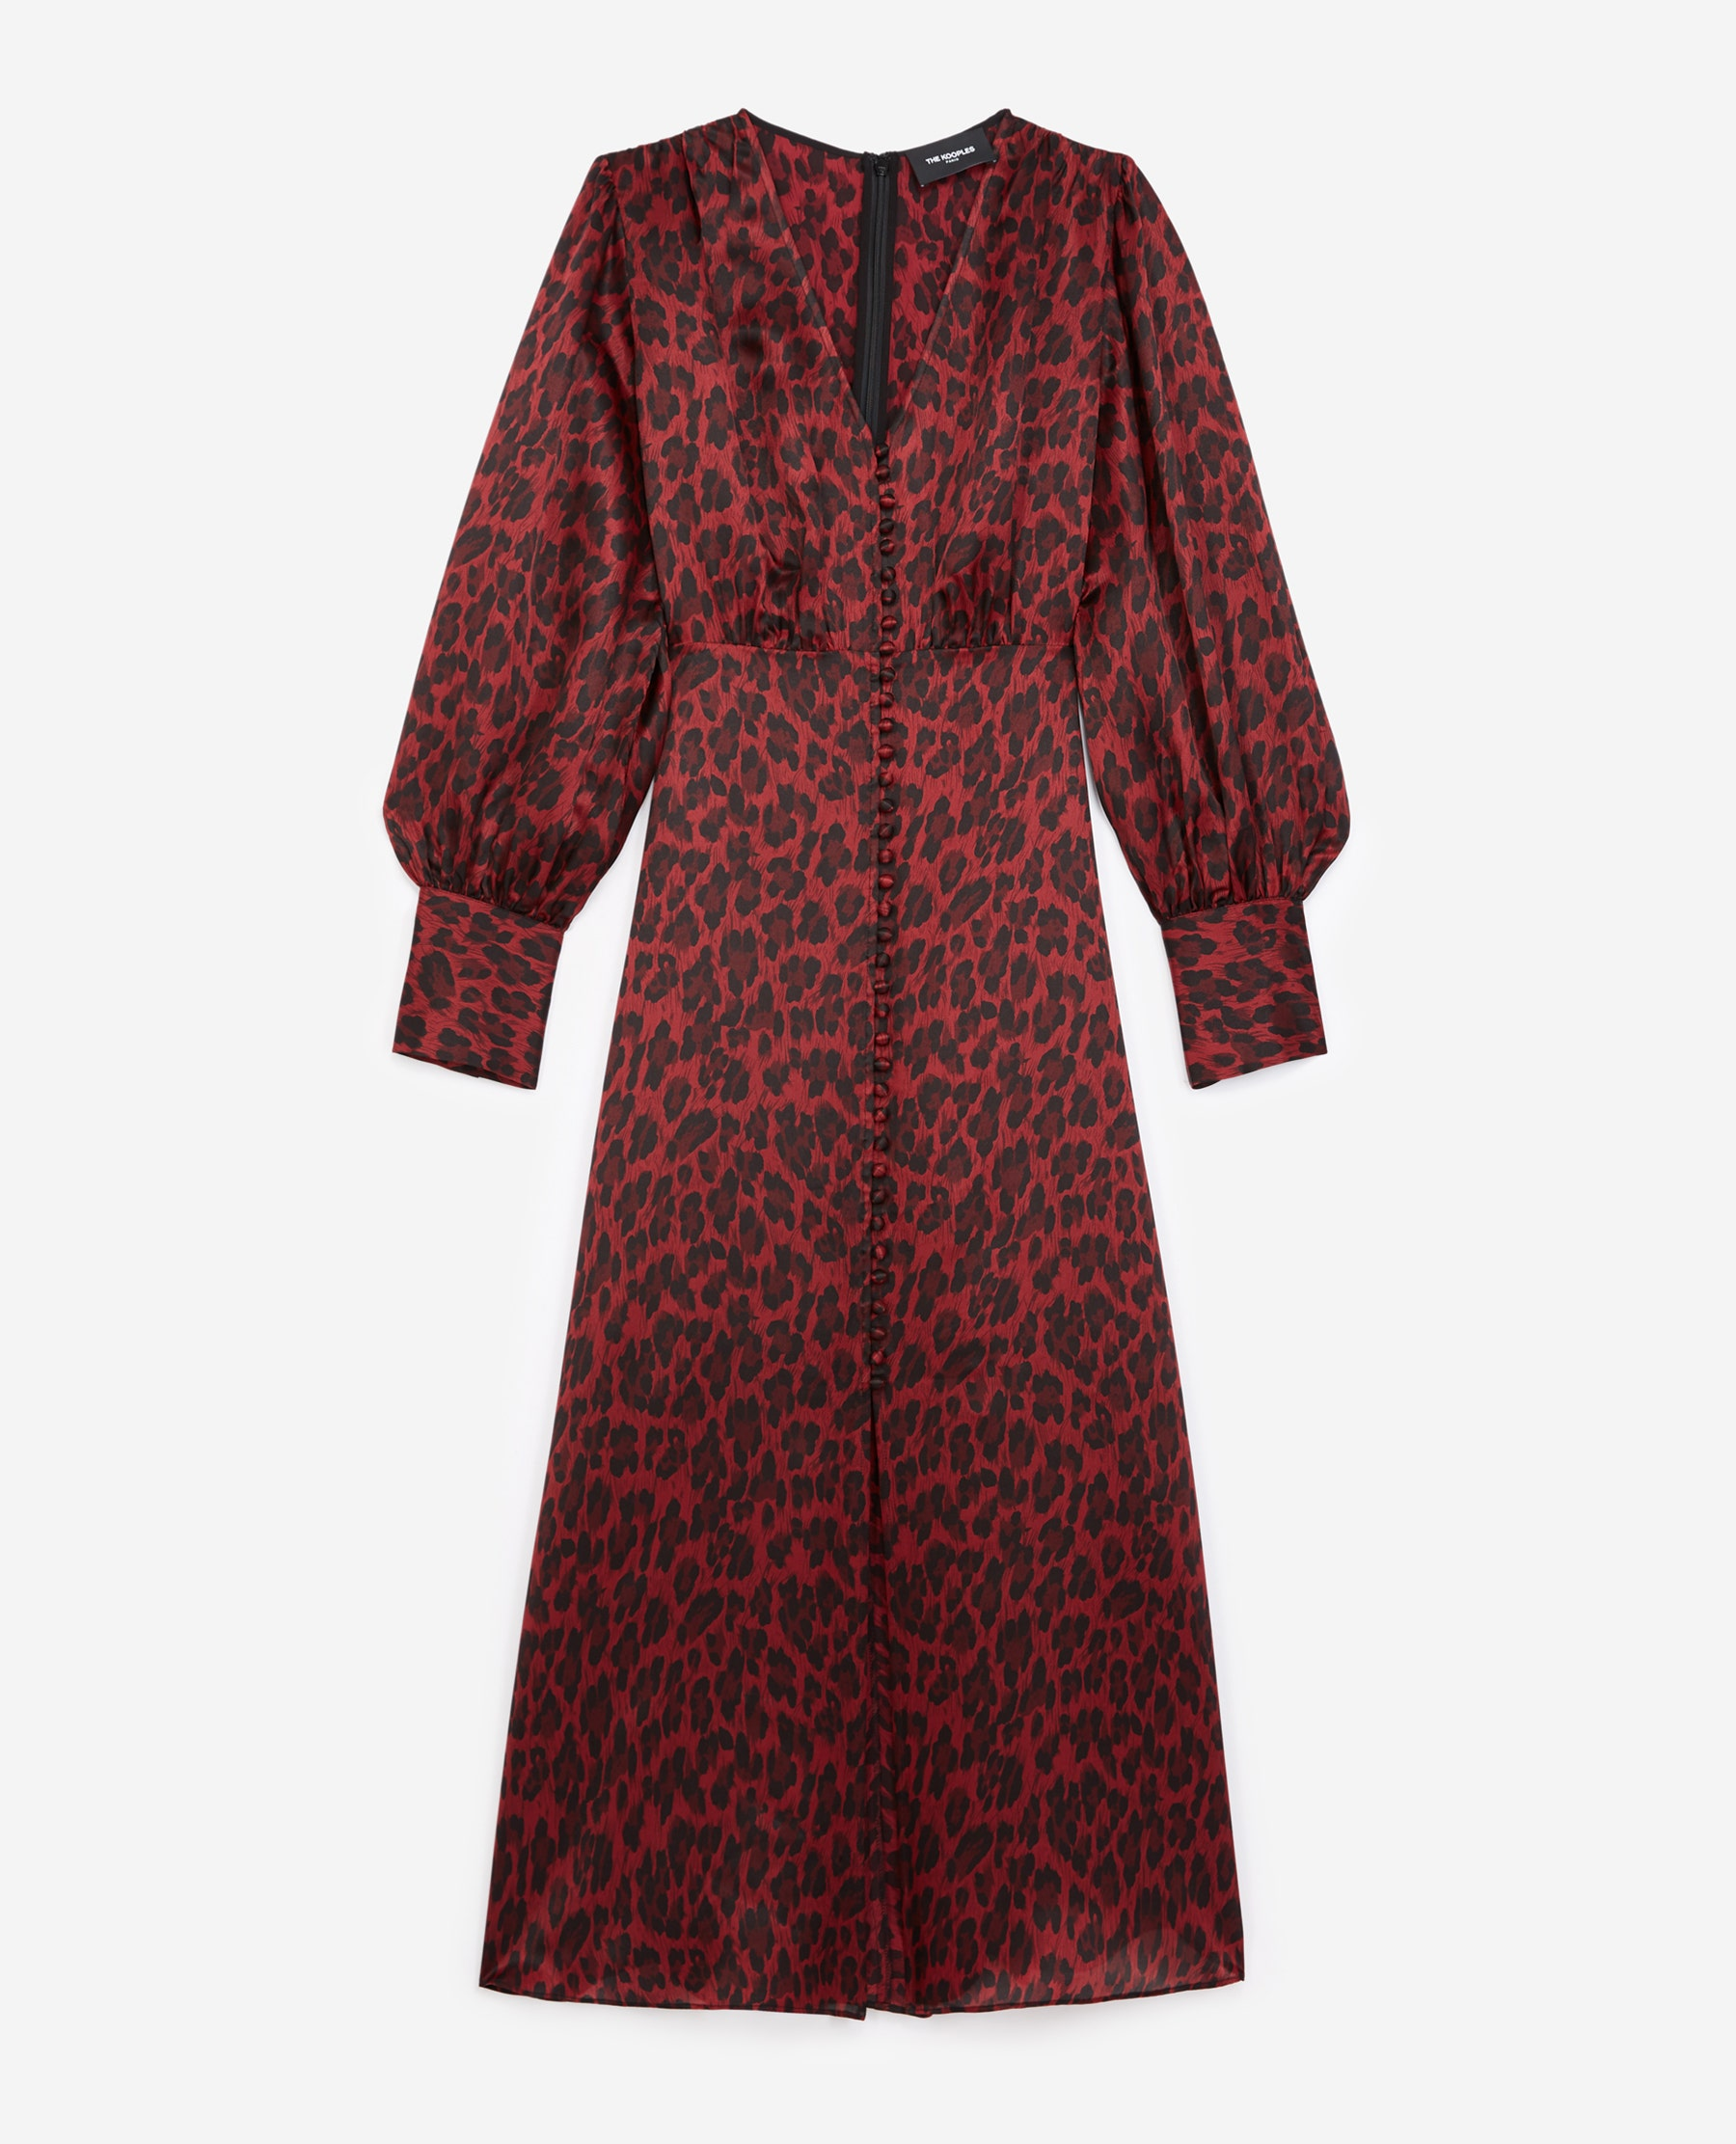 Robe longue bordeaux motif leopard - The Kooples - Modalova